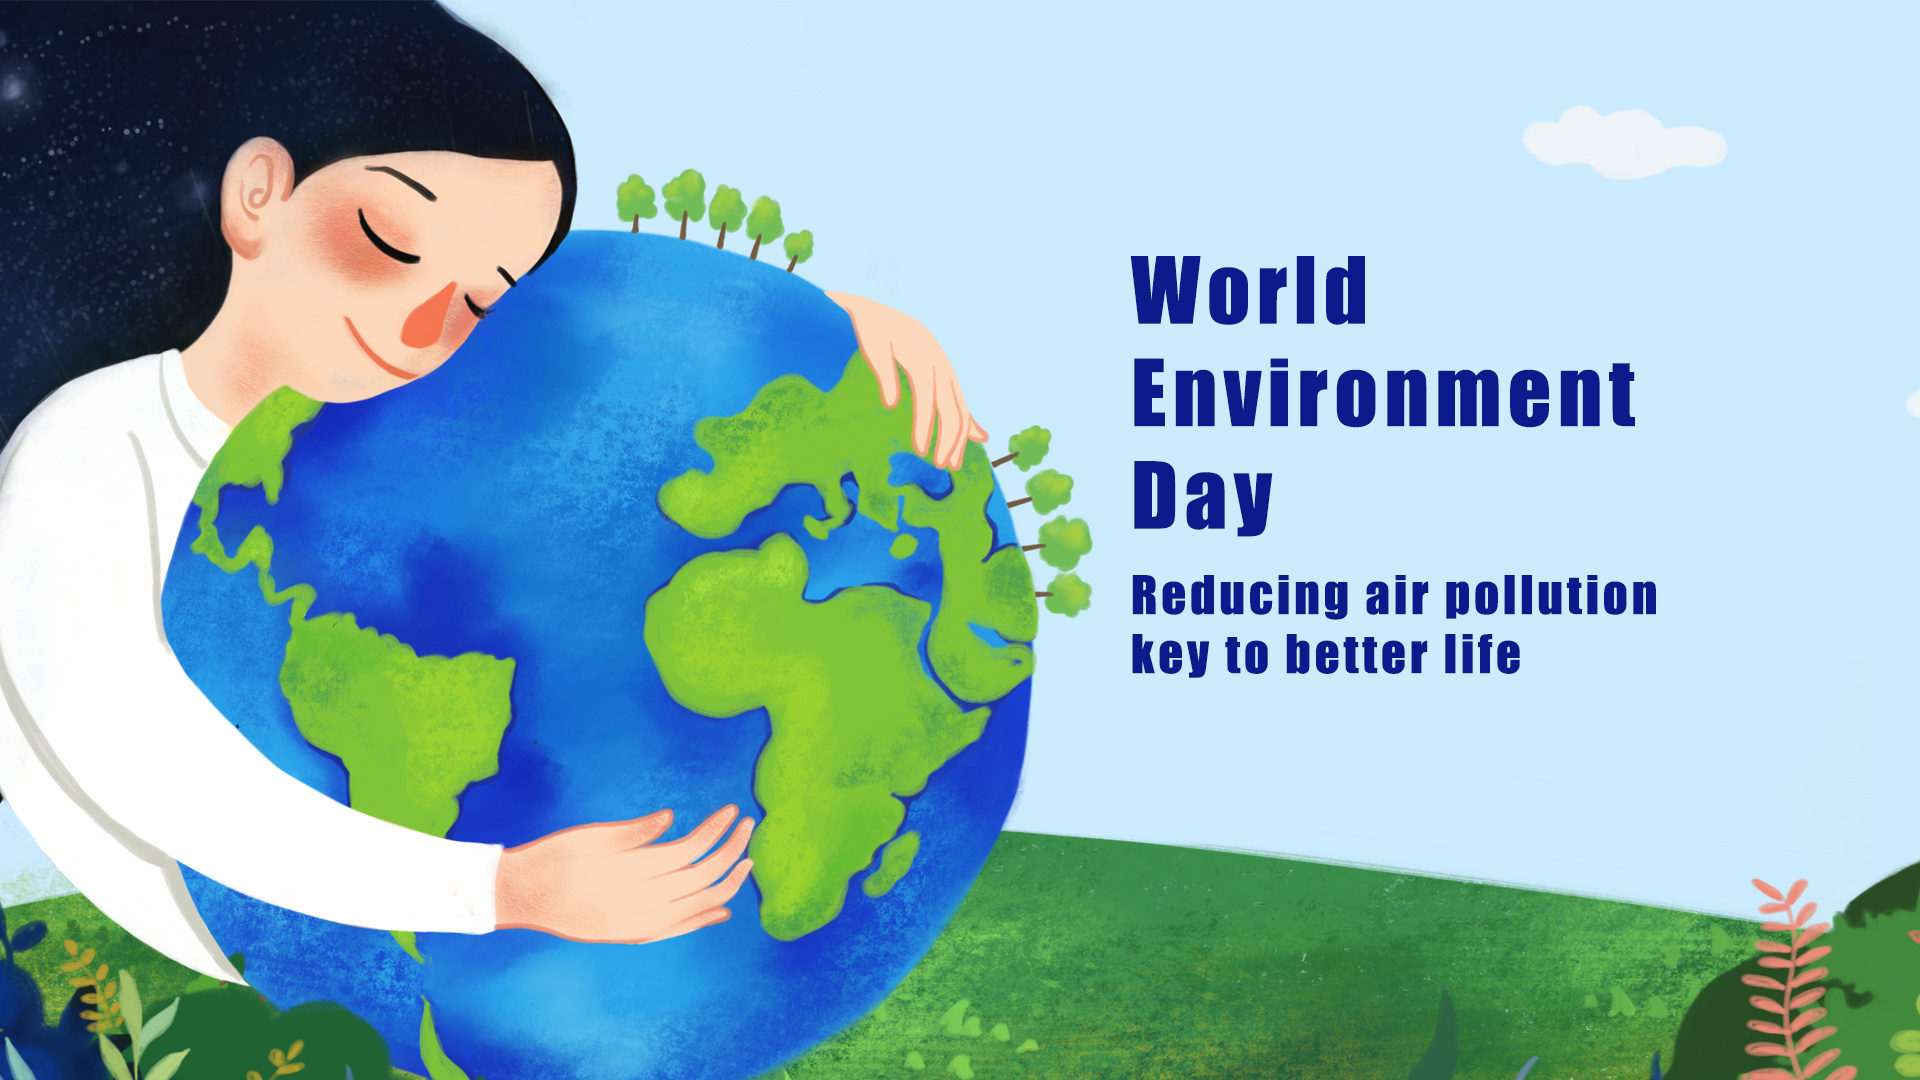 World Environment Day: Reducing air pollution key to better life